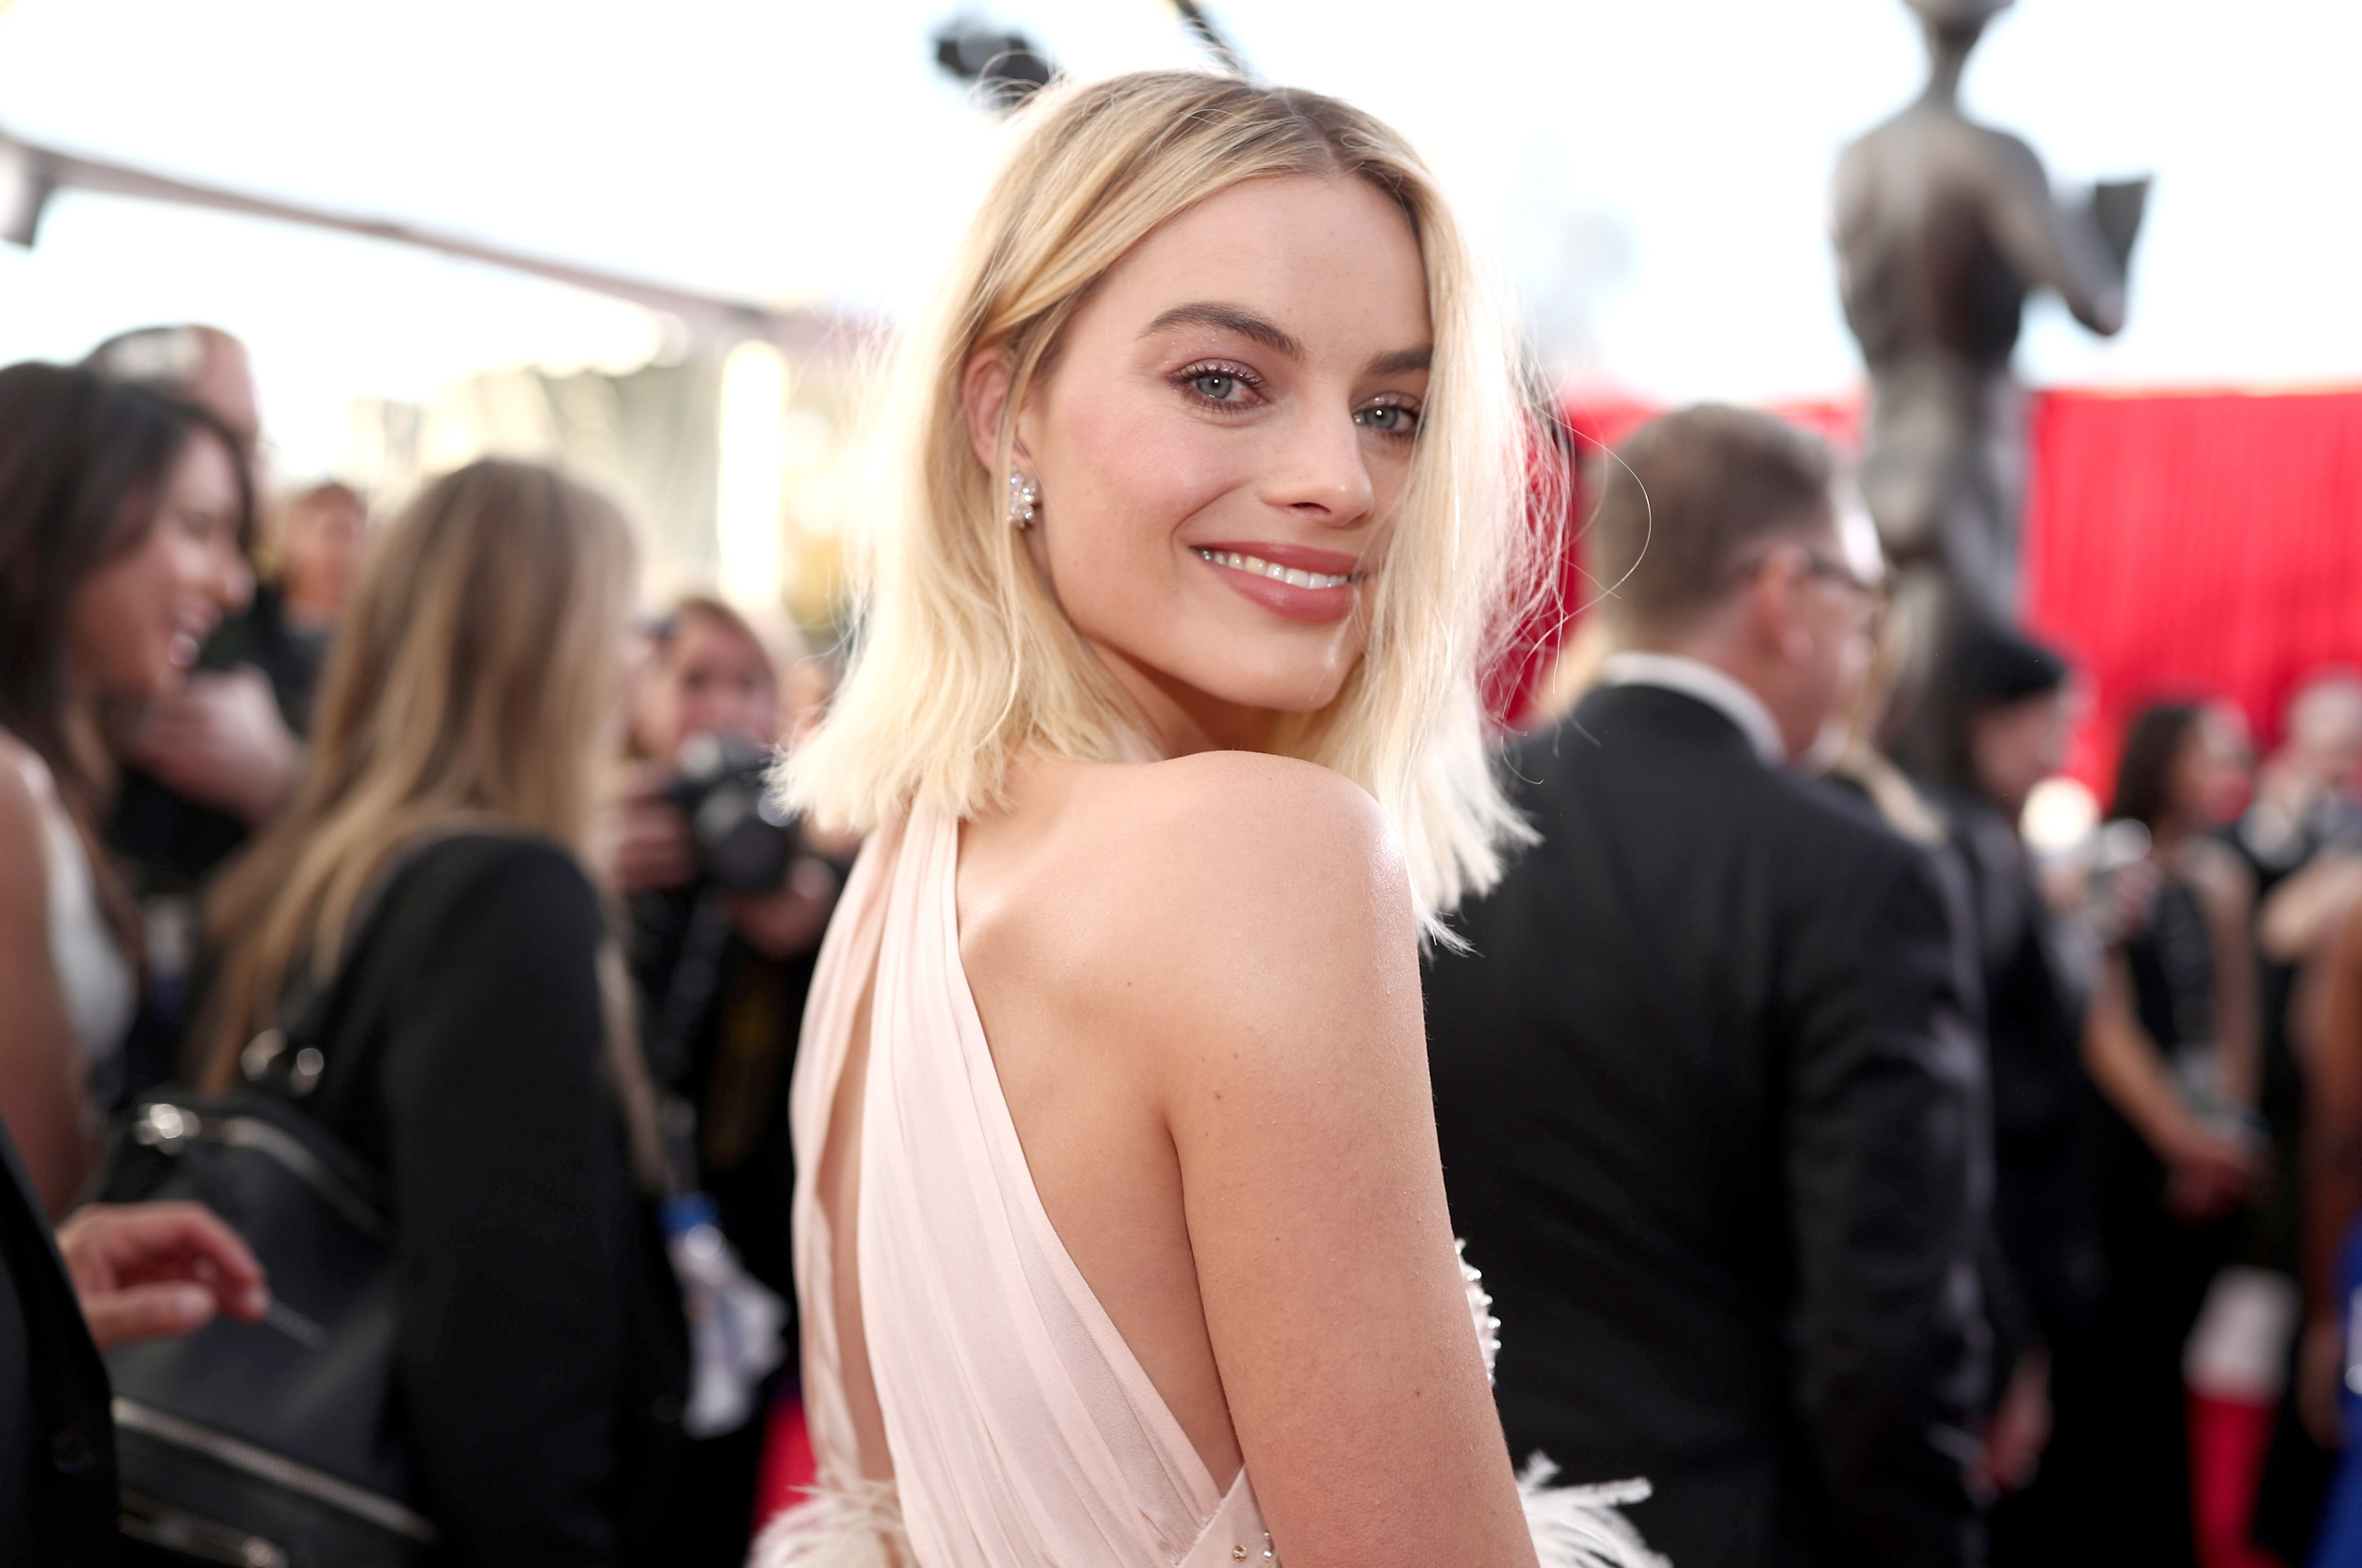 Screen Actors Guild Awards — 2018: Марго Робби, Холли Берри, Николь Кидман, Риз Уизерспун и другие на красной дорожке